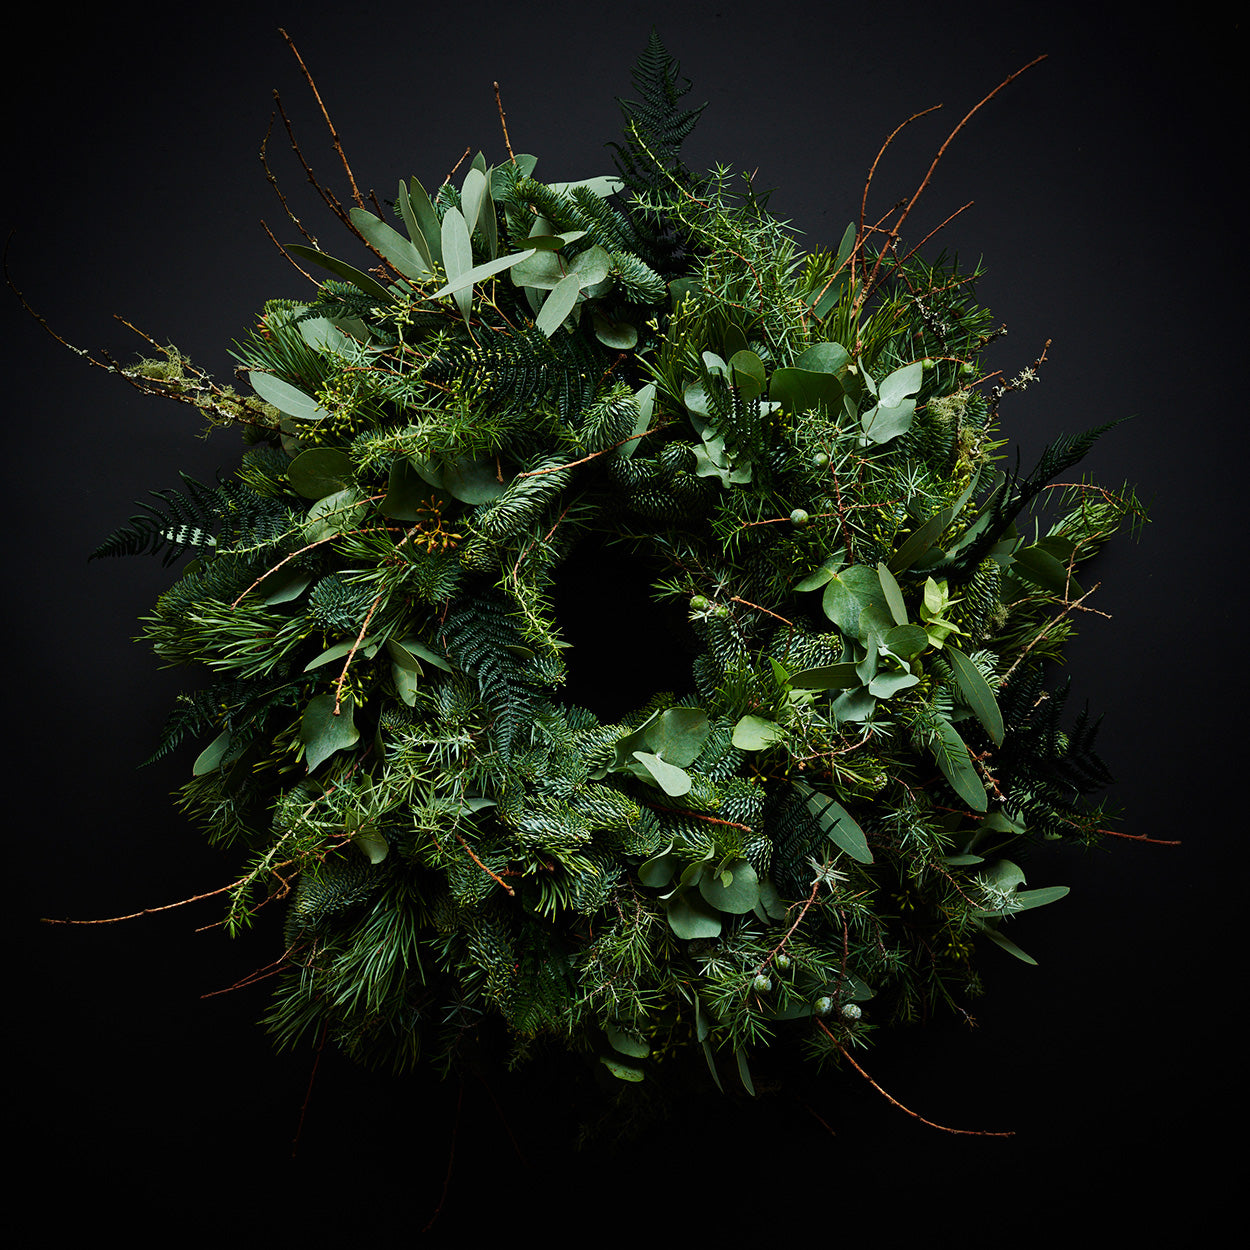 Rydal wreath